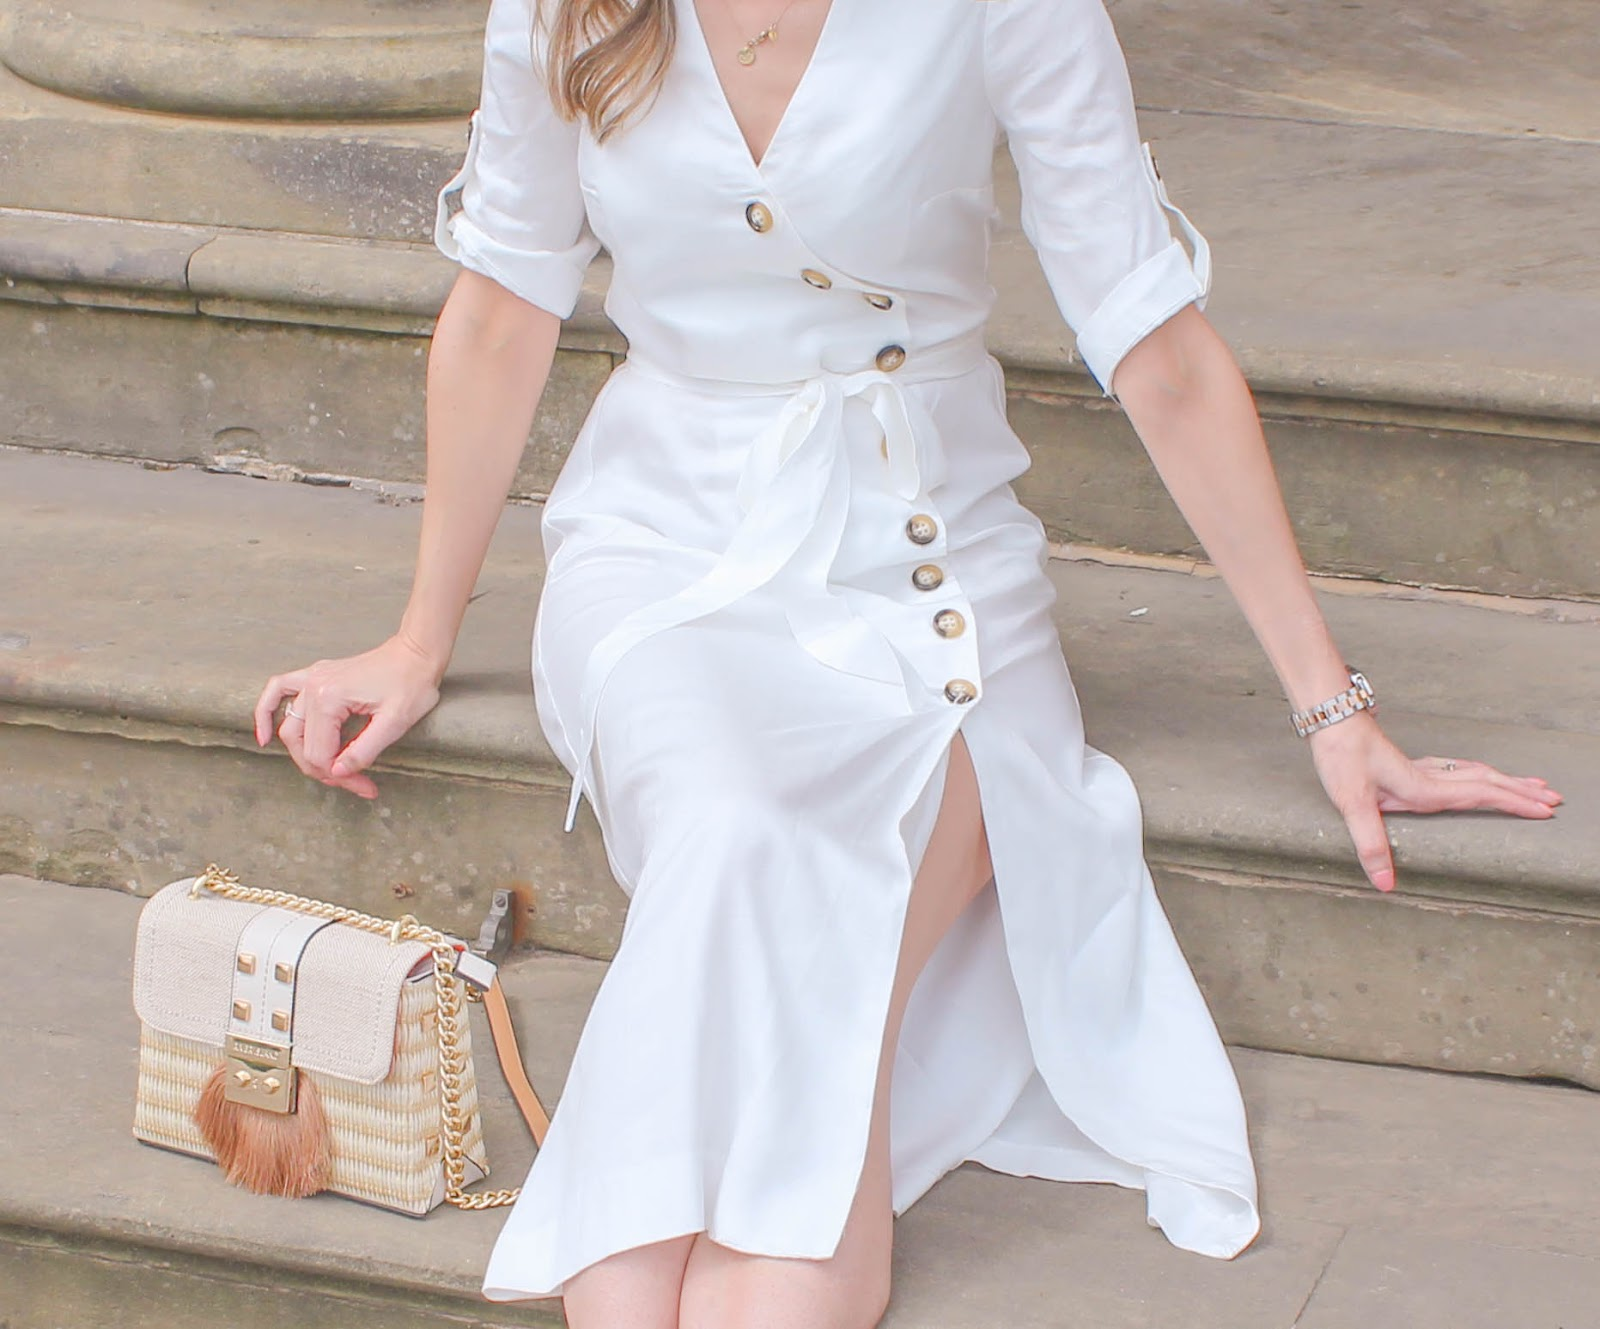 How to accessorise a white summer dress